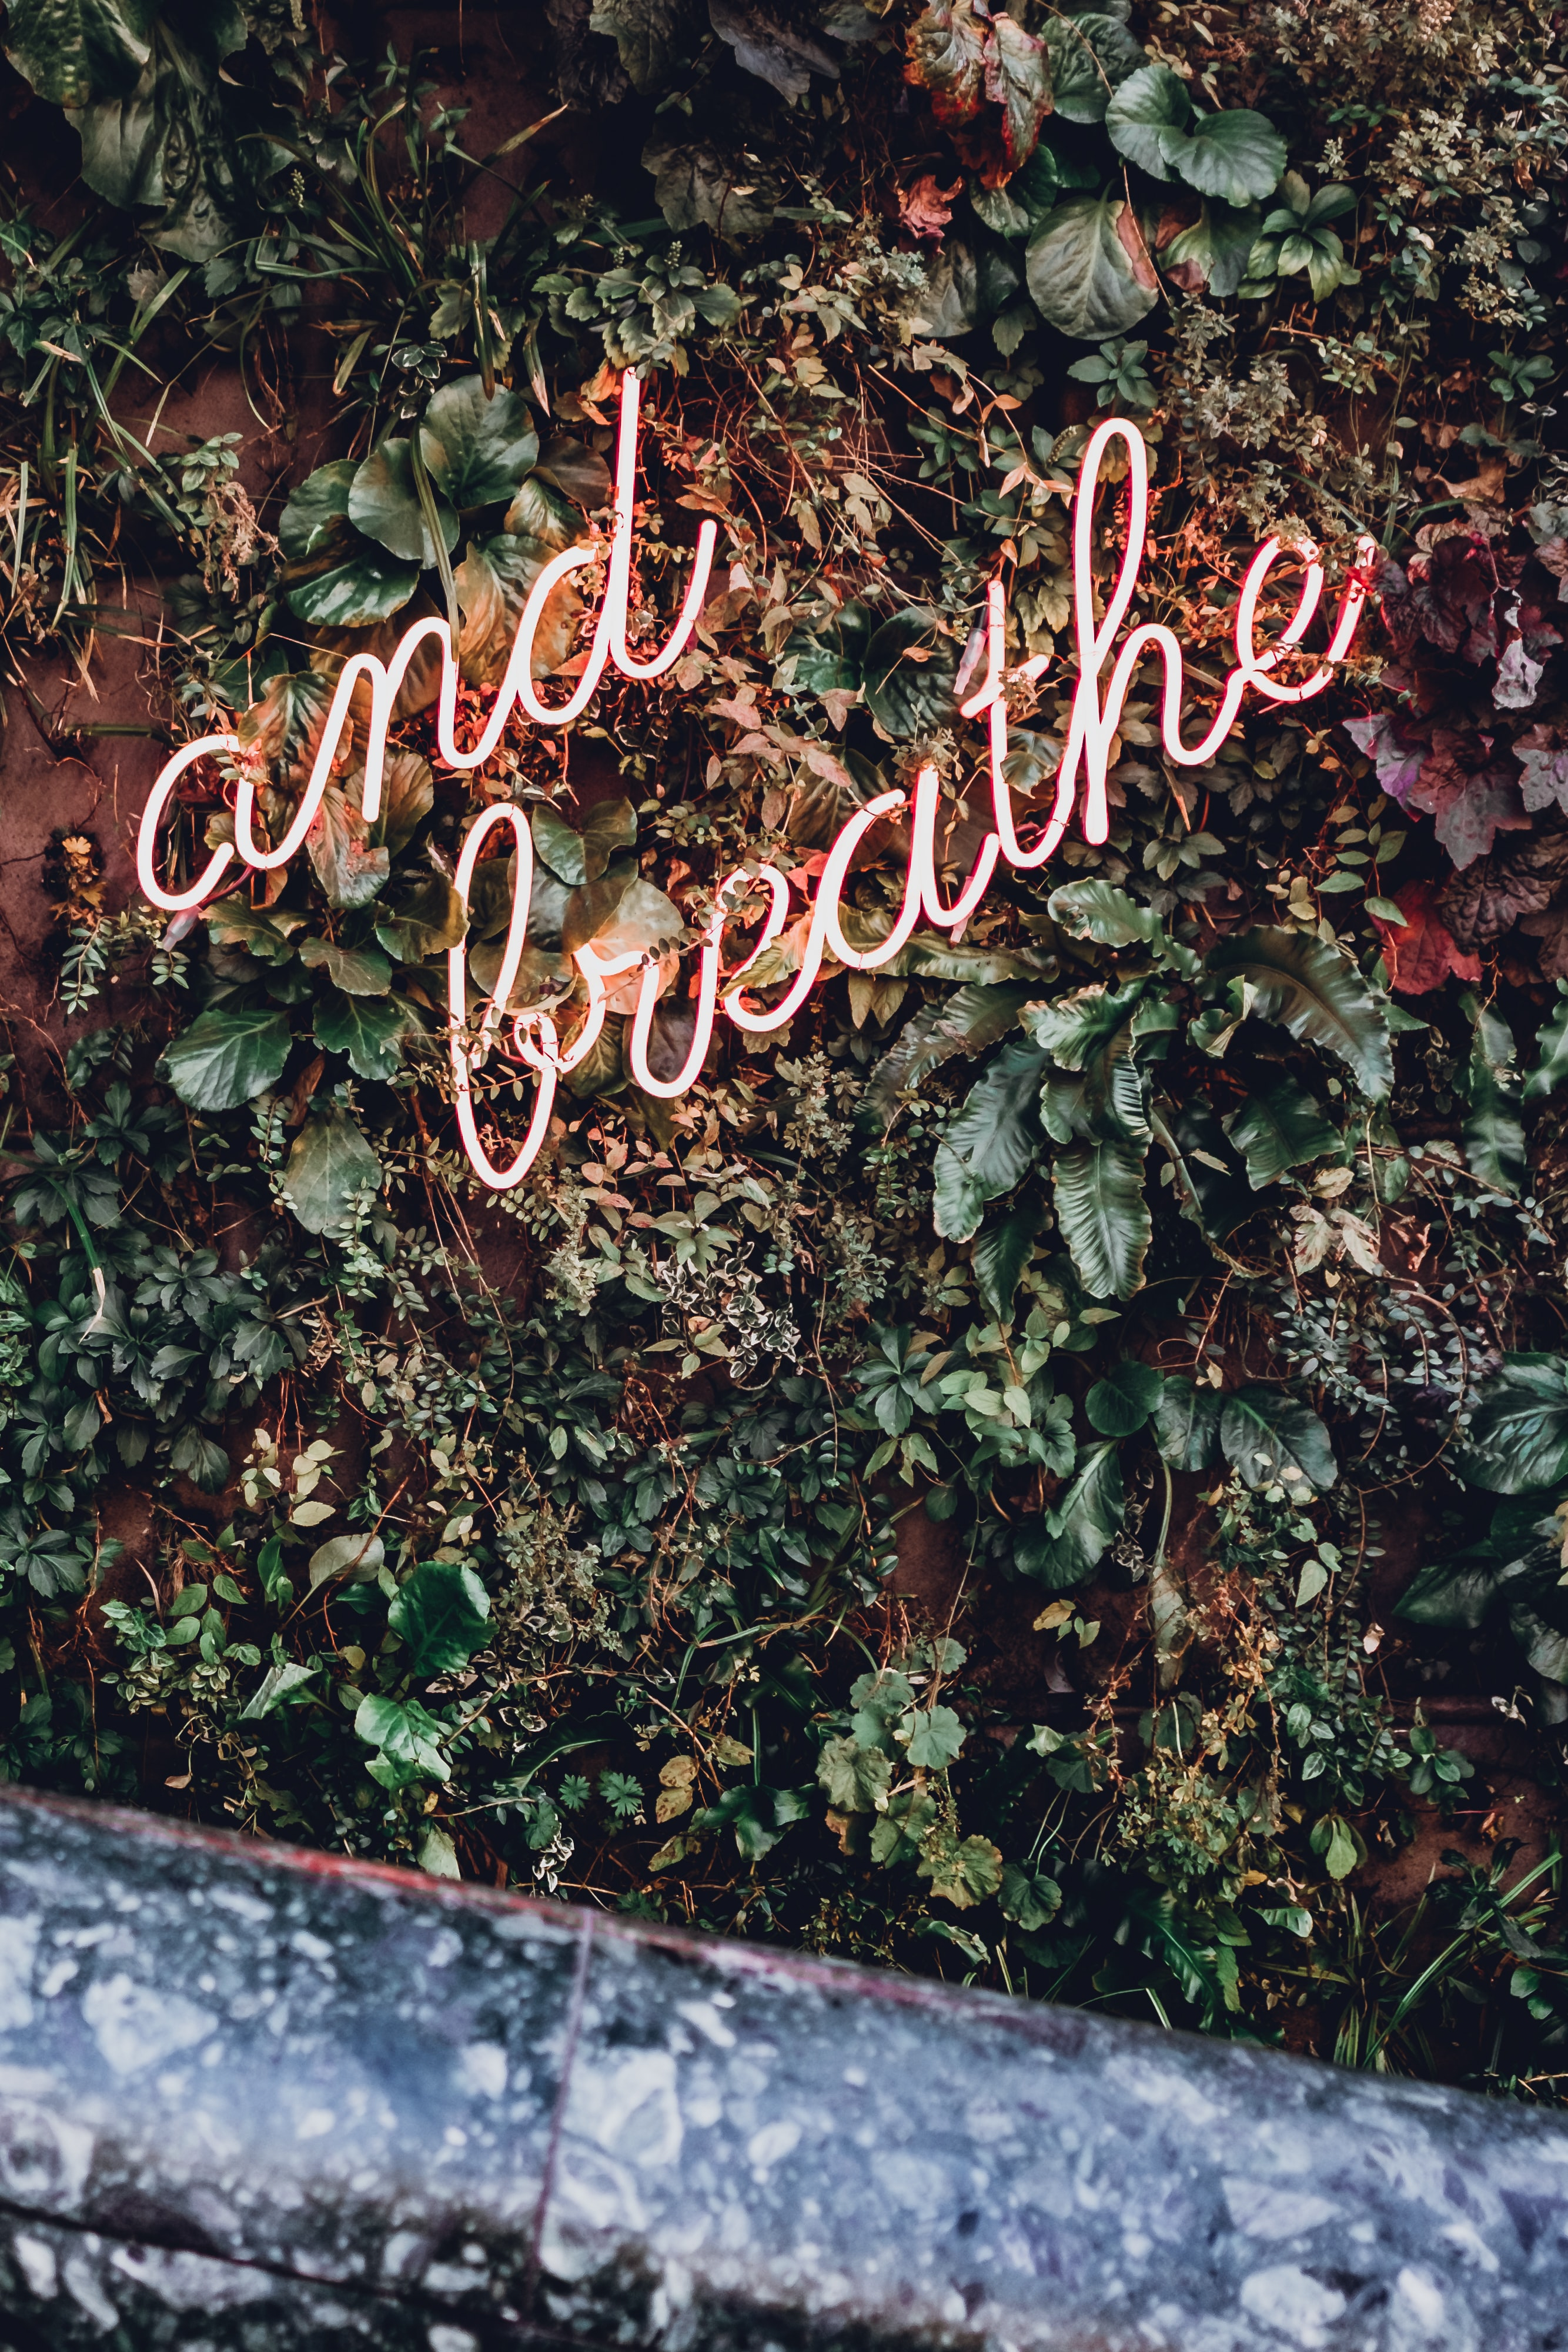 and breathe LED sign surrounded by green plants